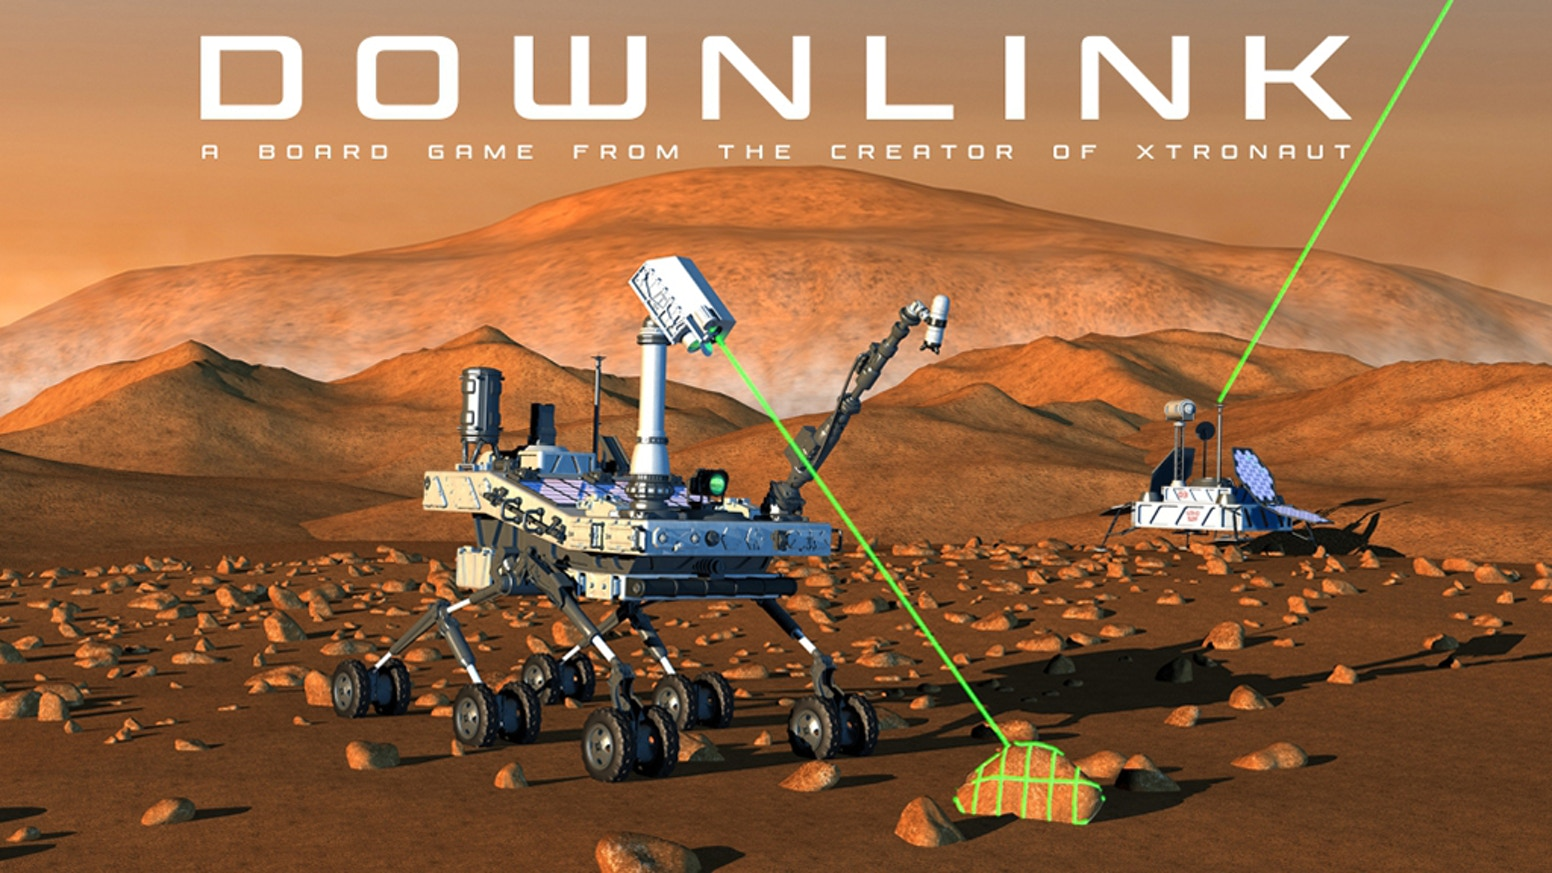 The first printing of Downlink has sold out! Look for the Premium Edition with the Sample Return Expansion in 2020!